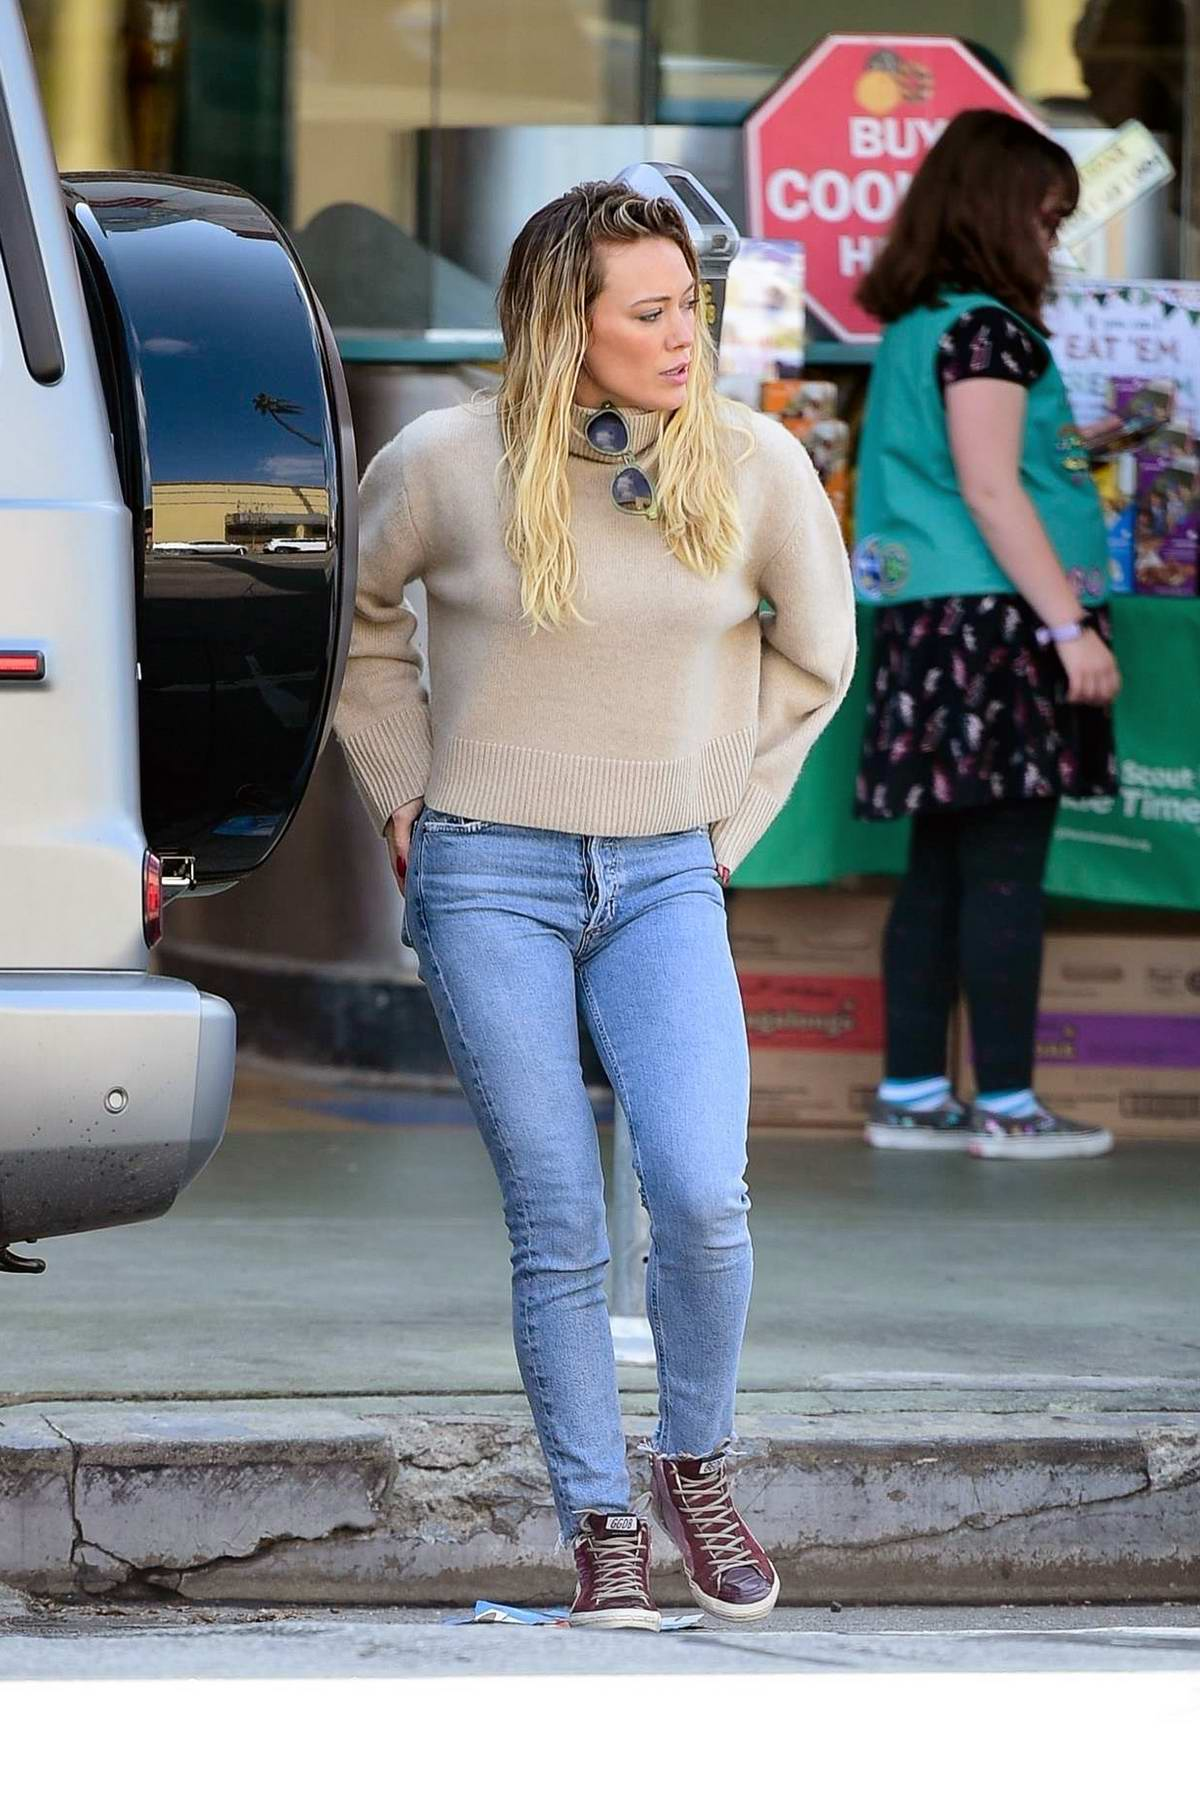 Hilary Duff keeps it casual in a beige sweater and tight denim while out for some shopping in Studio City, California